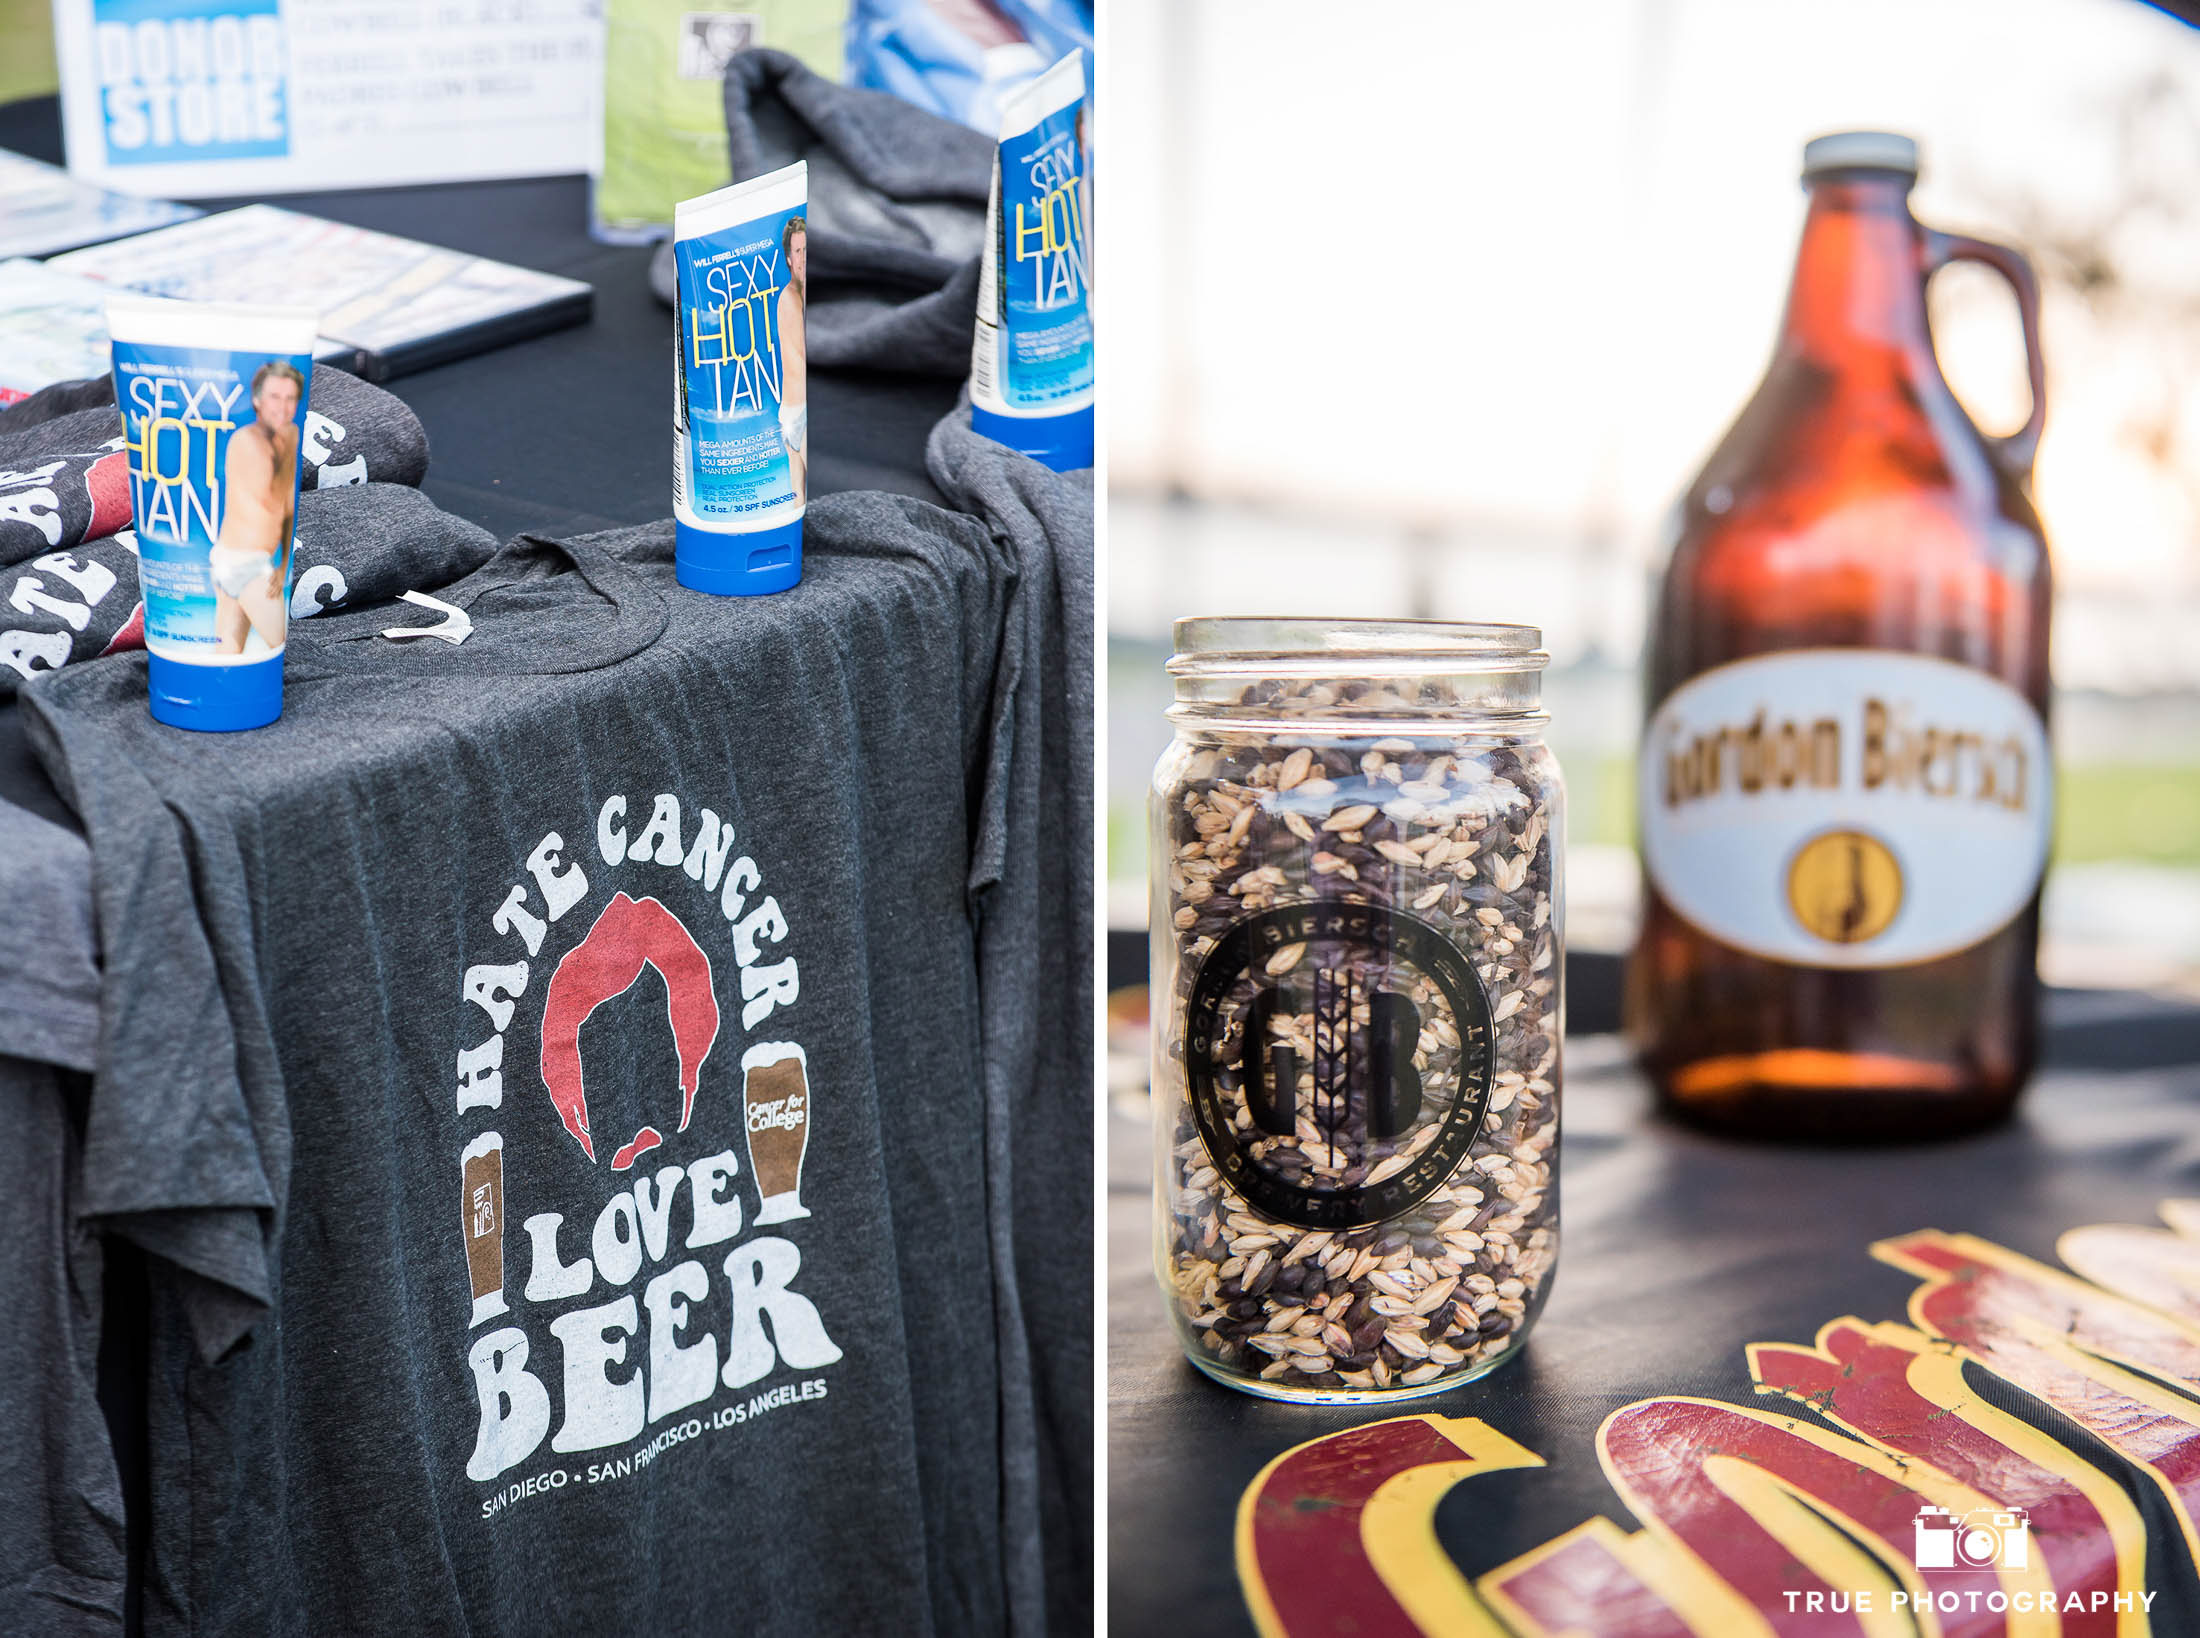 Cancer Prevention and Beer merchandise at Best Coast Beer Fest